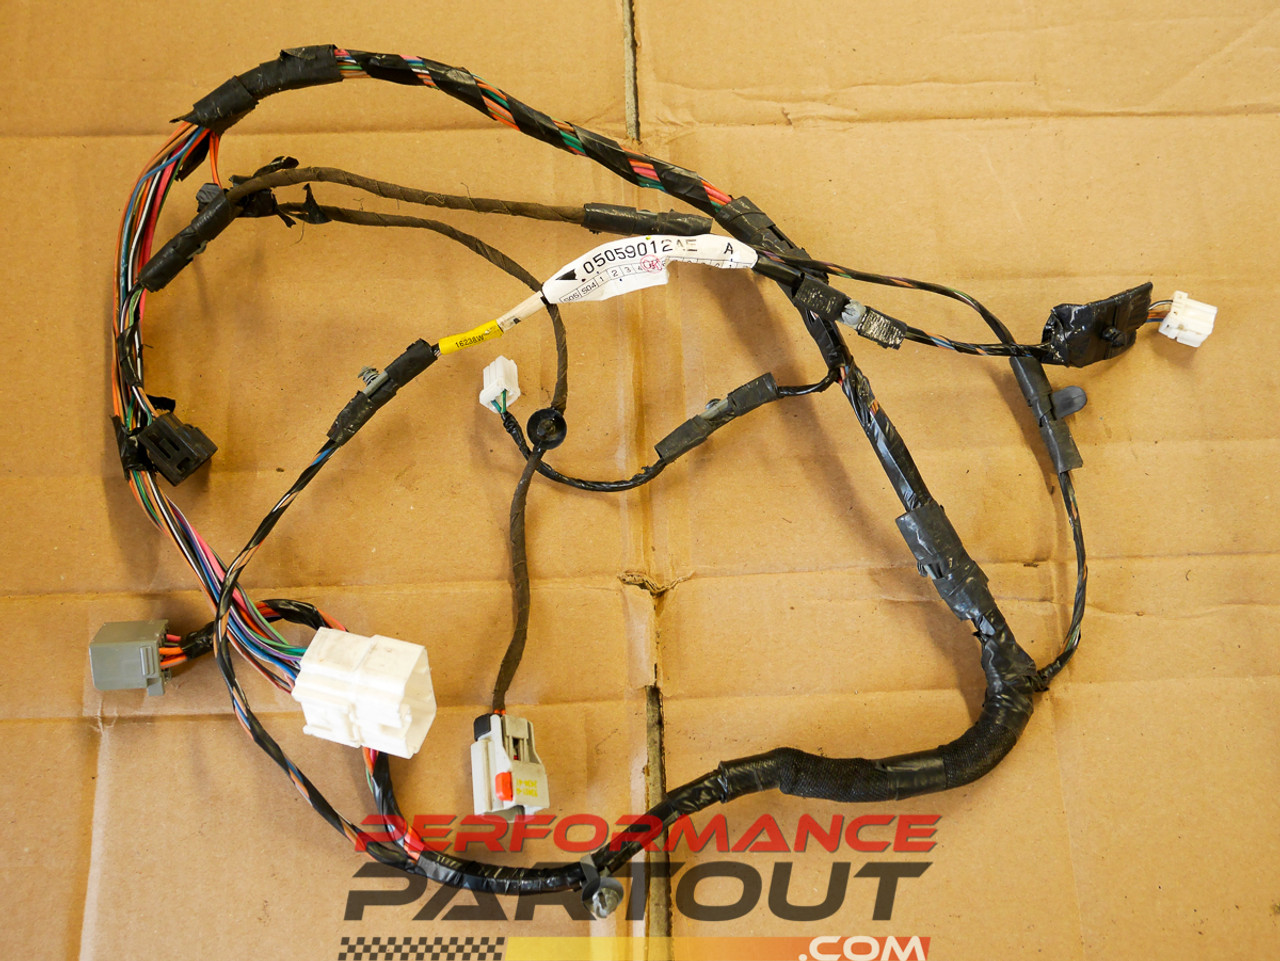 medium resolution of door wiring harness passenger right front magnum charger 300 05 07 performance partout